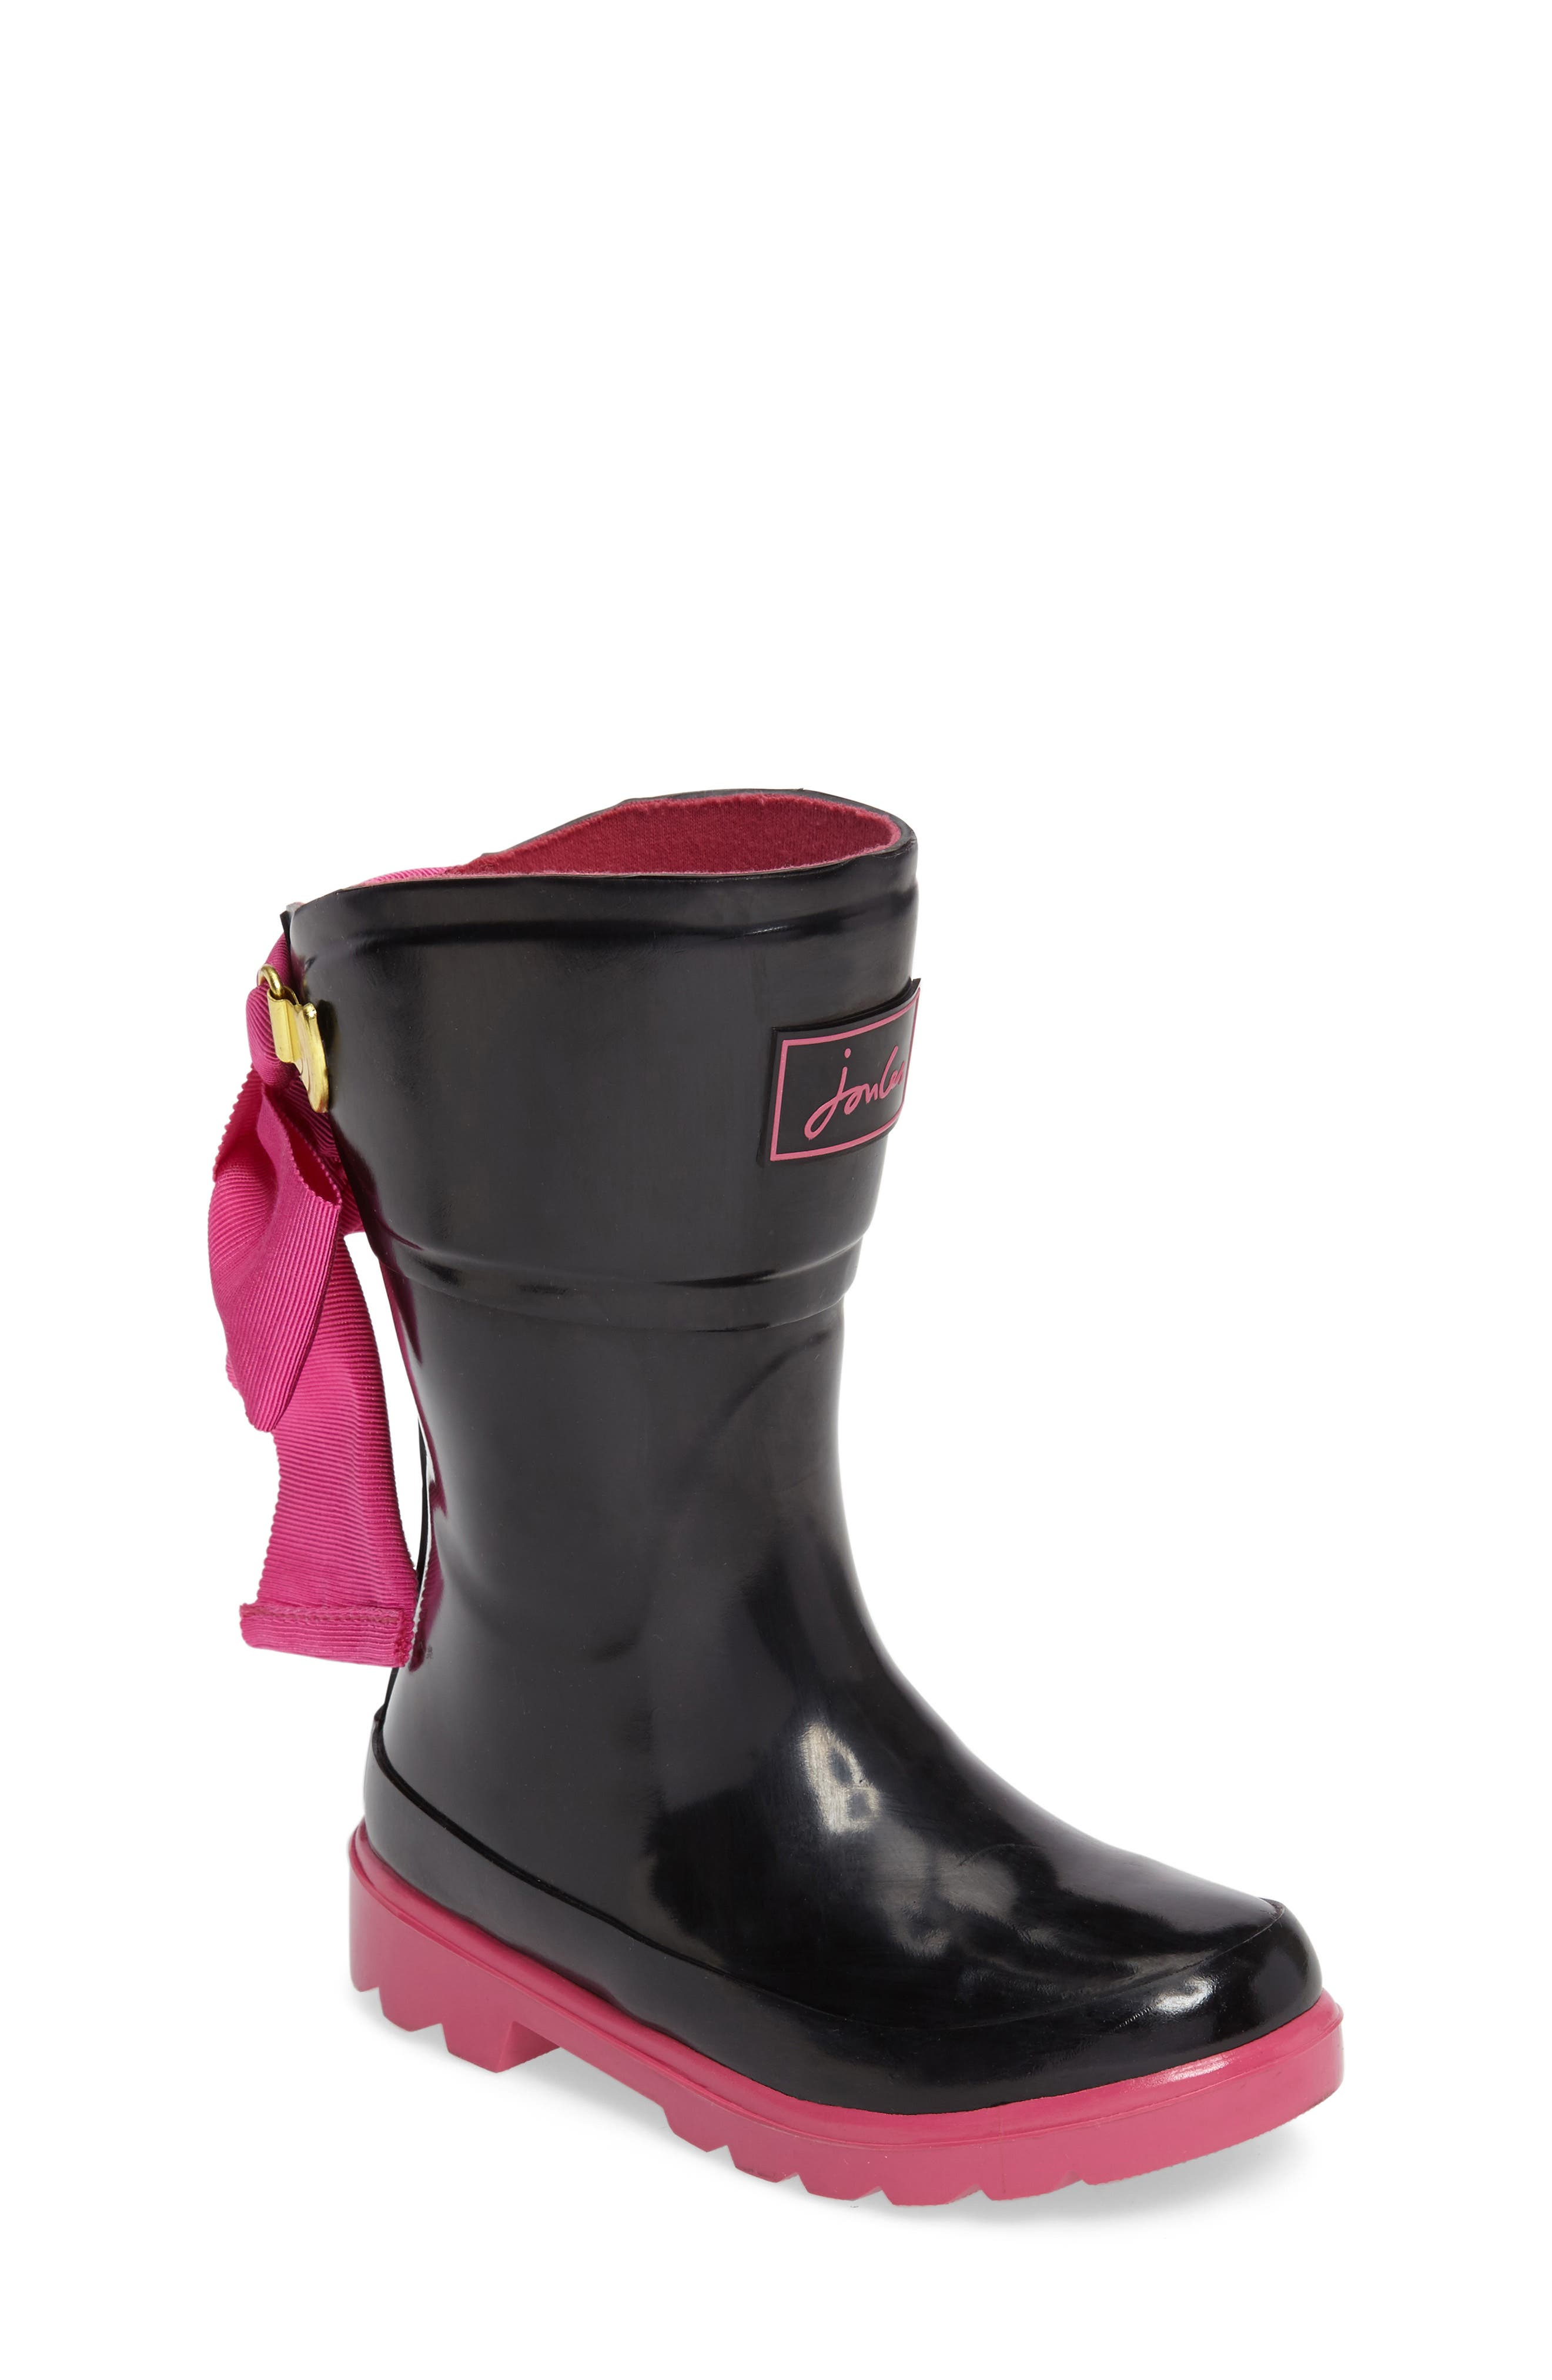 Joules Evedon Rain Boot (Walker, Toddler, Little Kid & Big Kid)